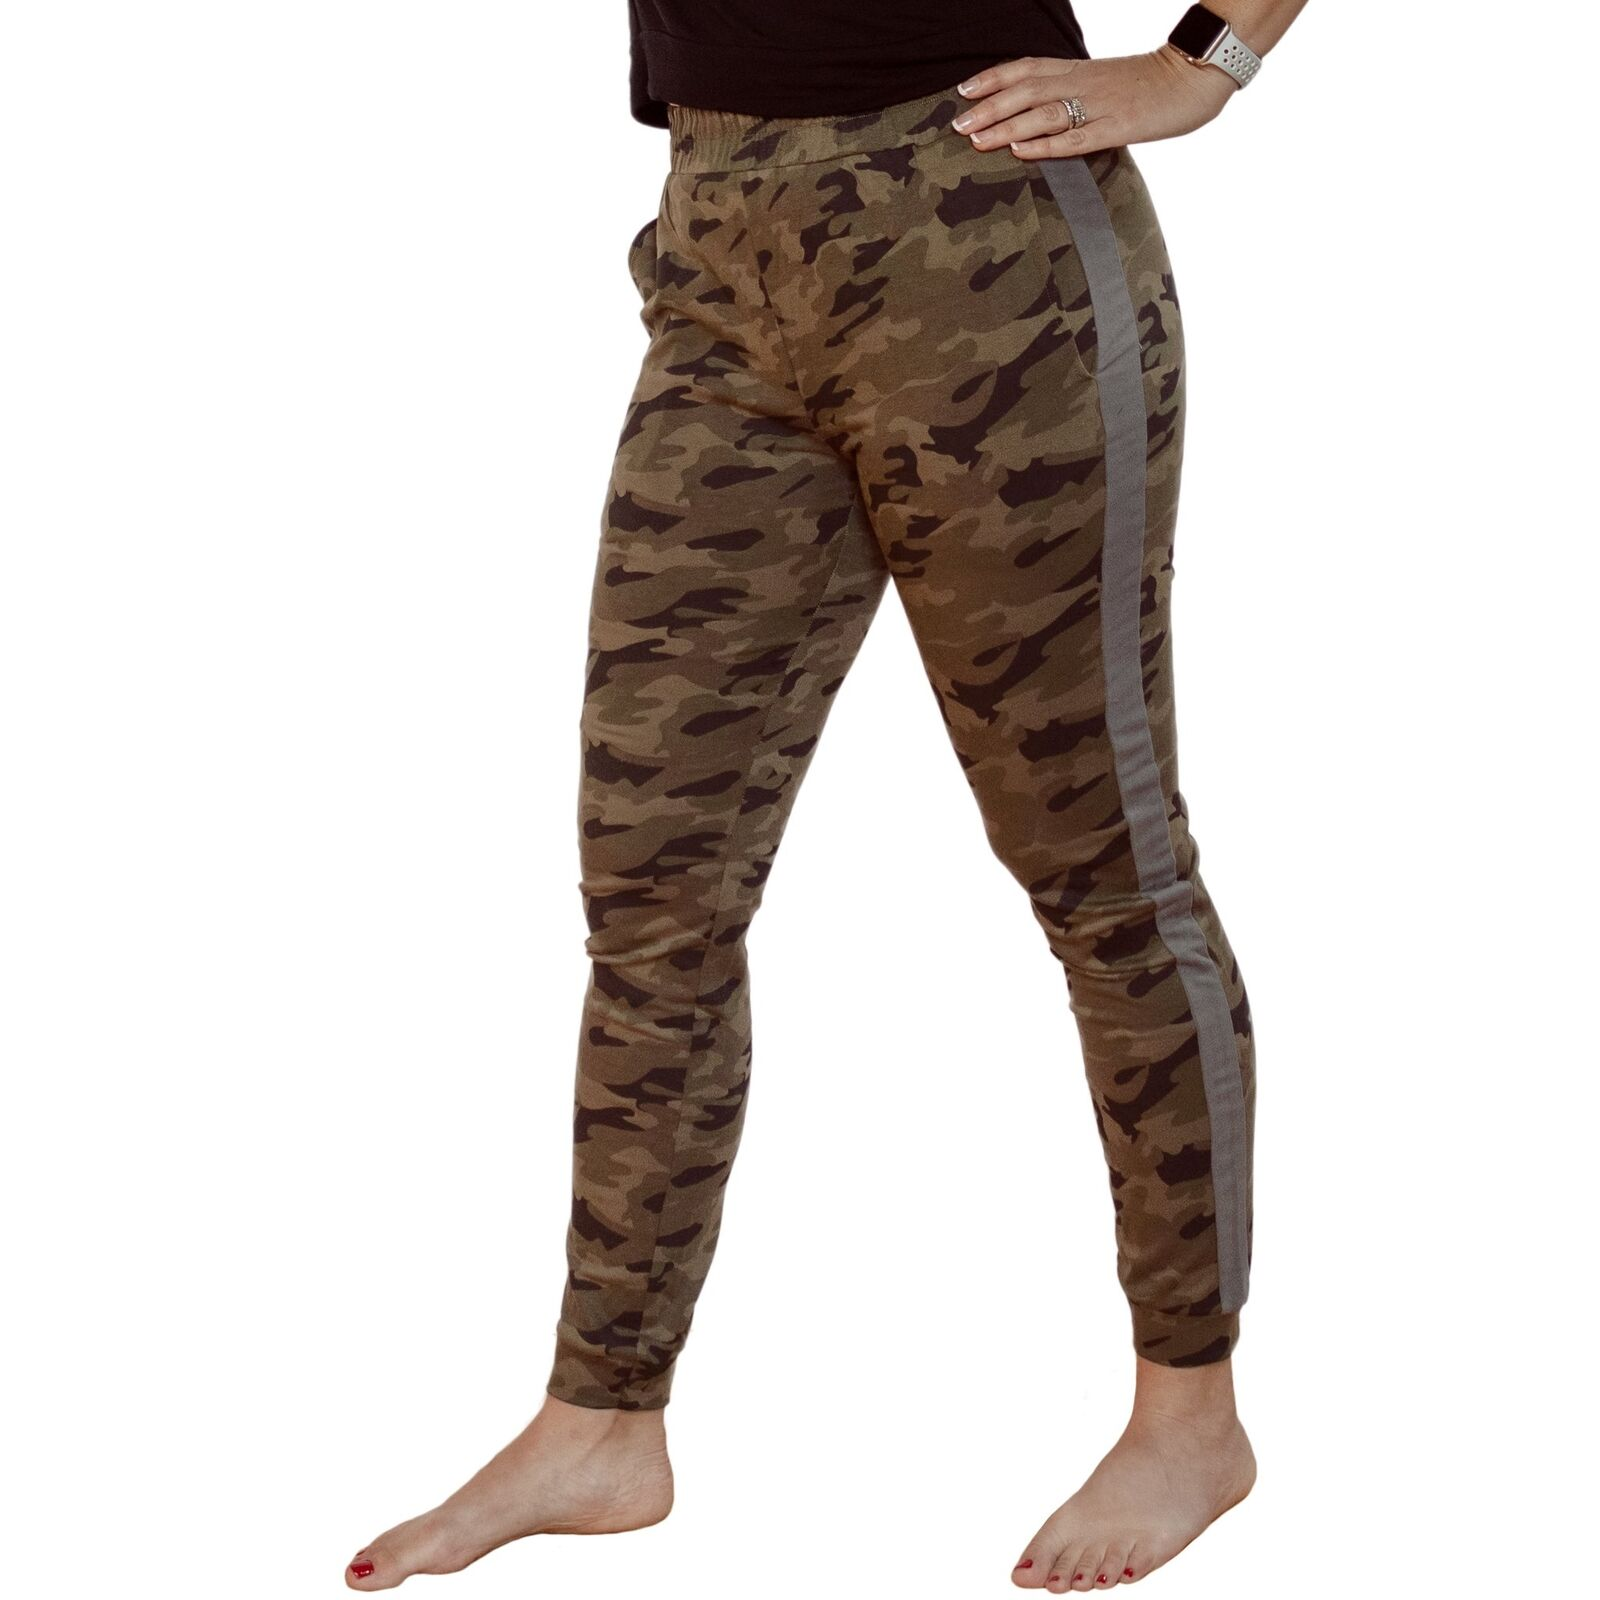 Women Camo Jogger Leggings for Barre, Yoga and Fitness Workouts XS-S-M-L